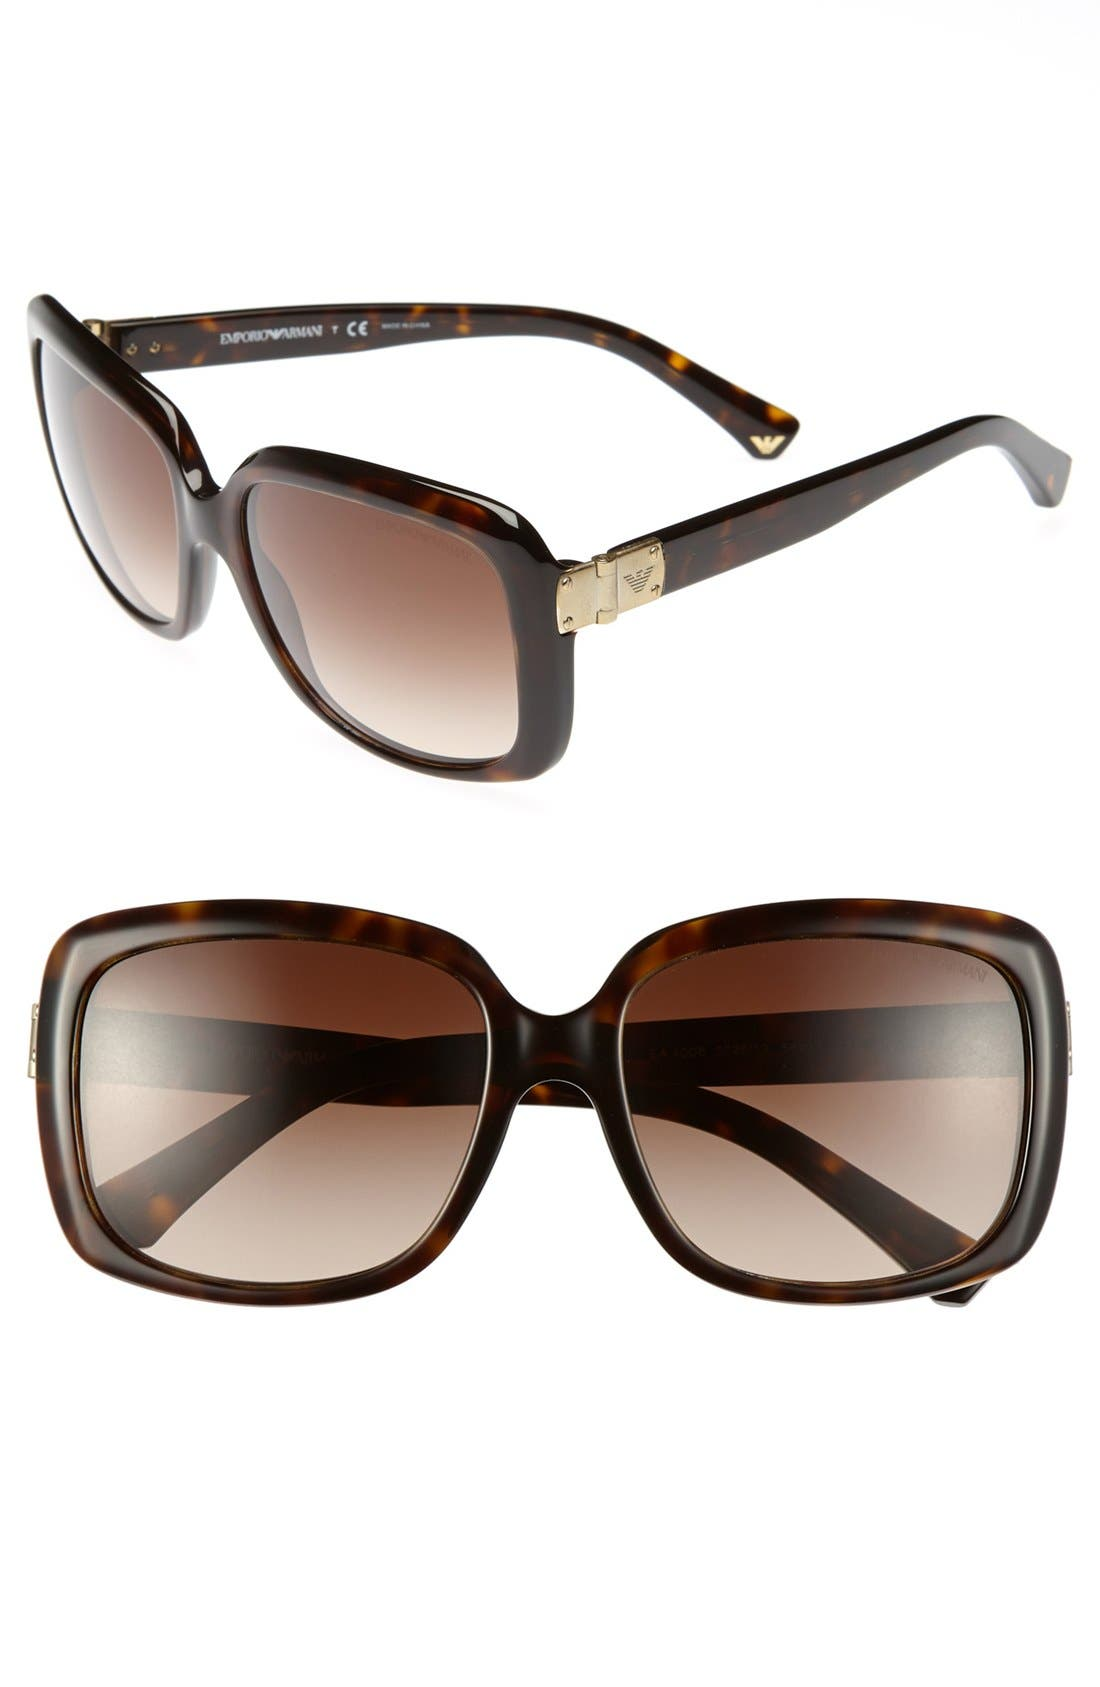 Alternate Image 1 Selected - Emporio Armani 56mm Sunglasses